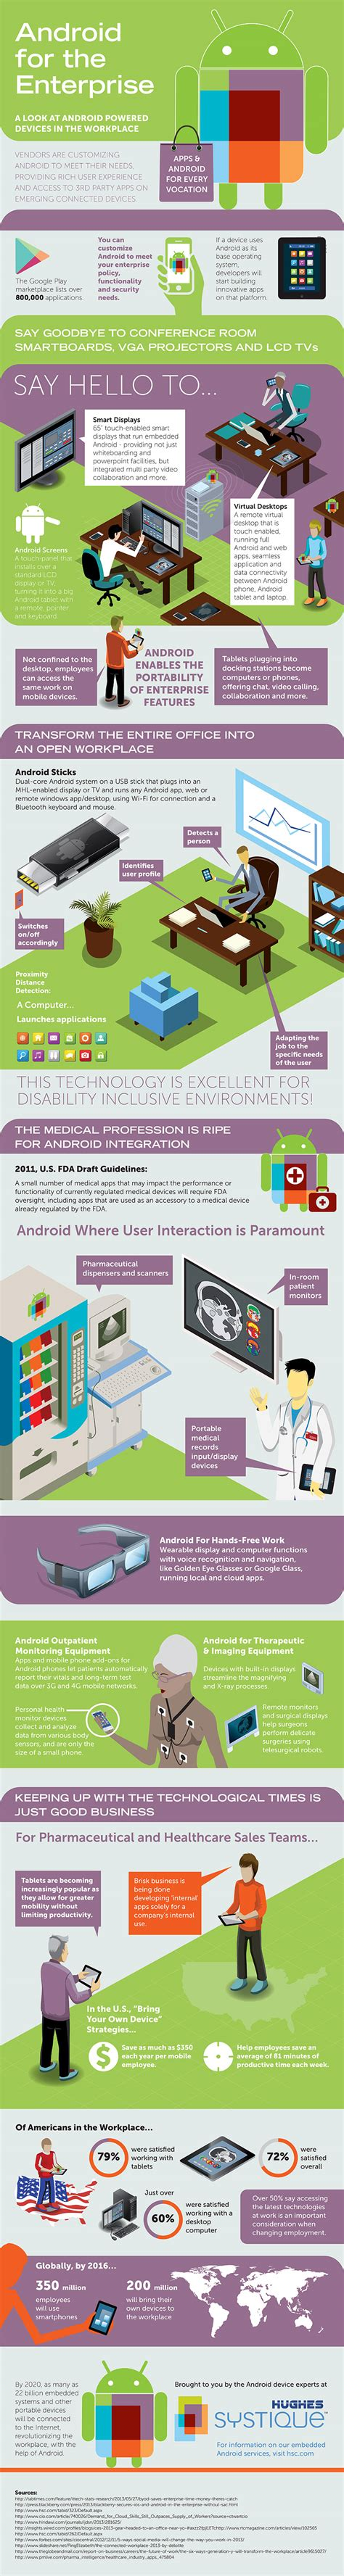 for enterprise android hughes systique enterprise android infographic cypress